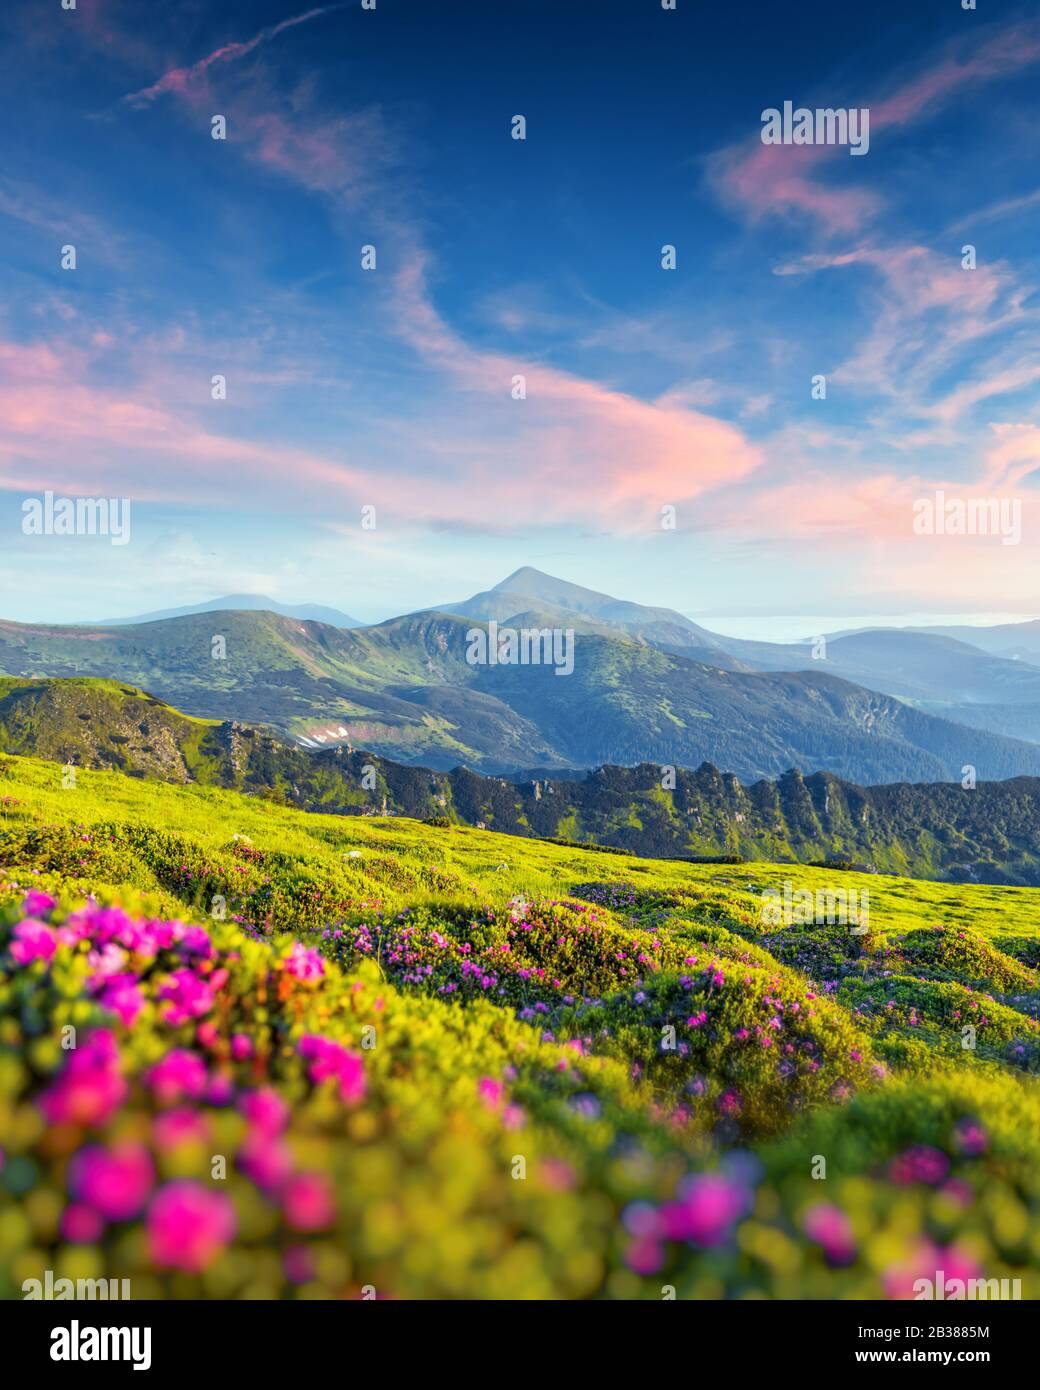 Rhododendron flowers covered mountains meadow in summer time. Purple sunrise light glowing on a foreground. Landscape photography Stock Photo